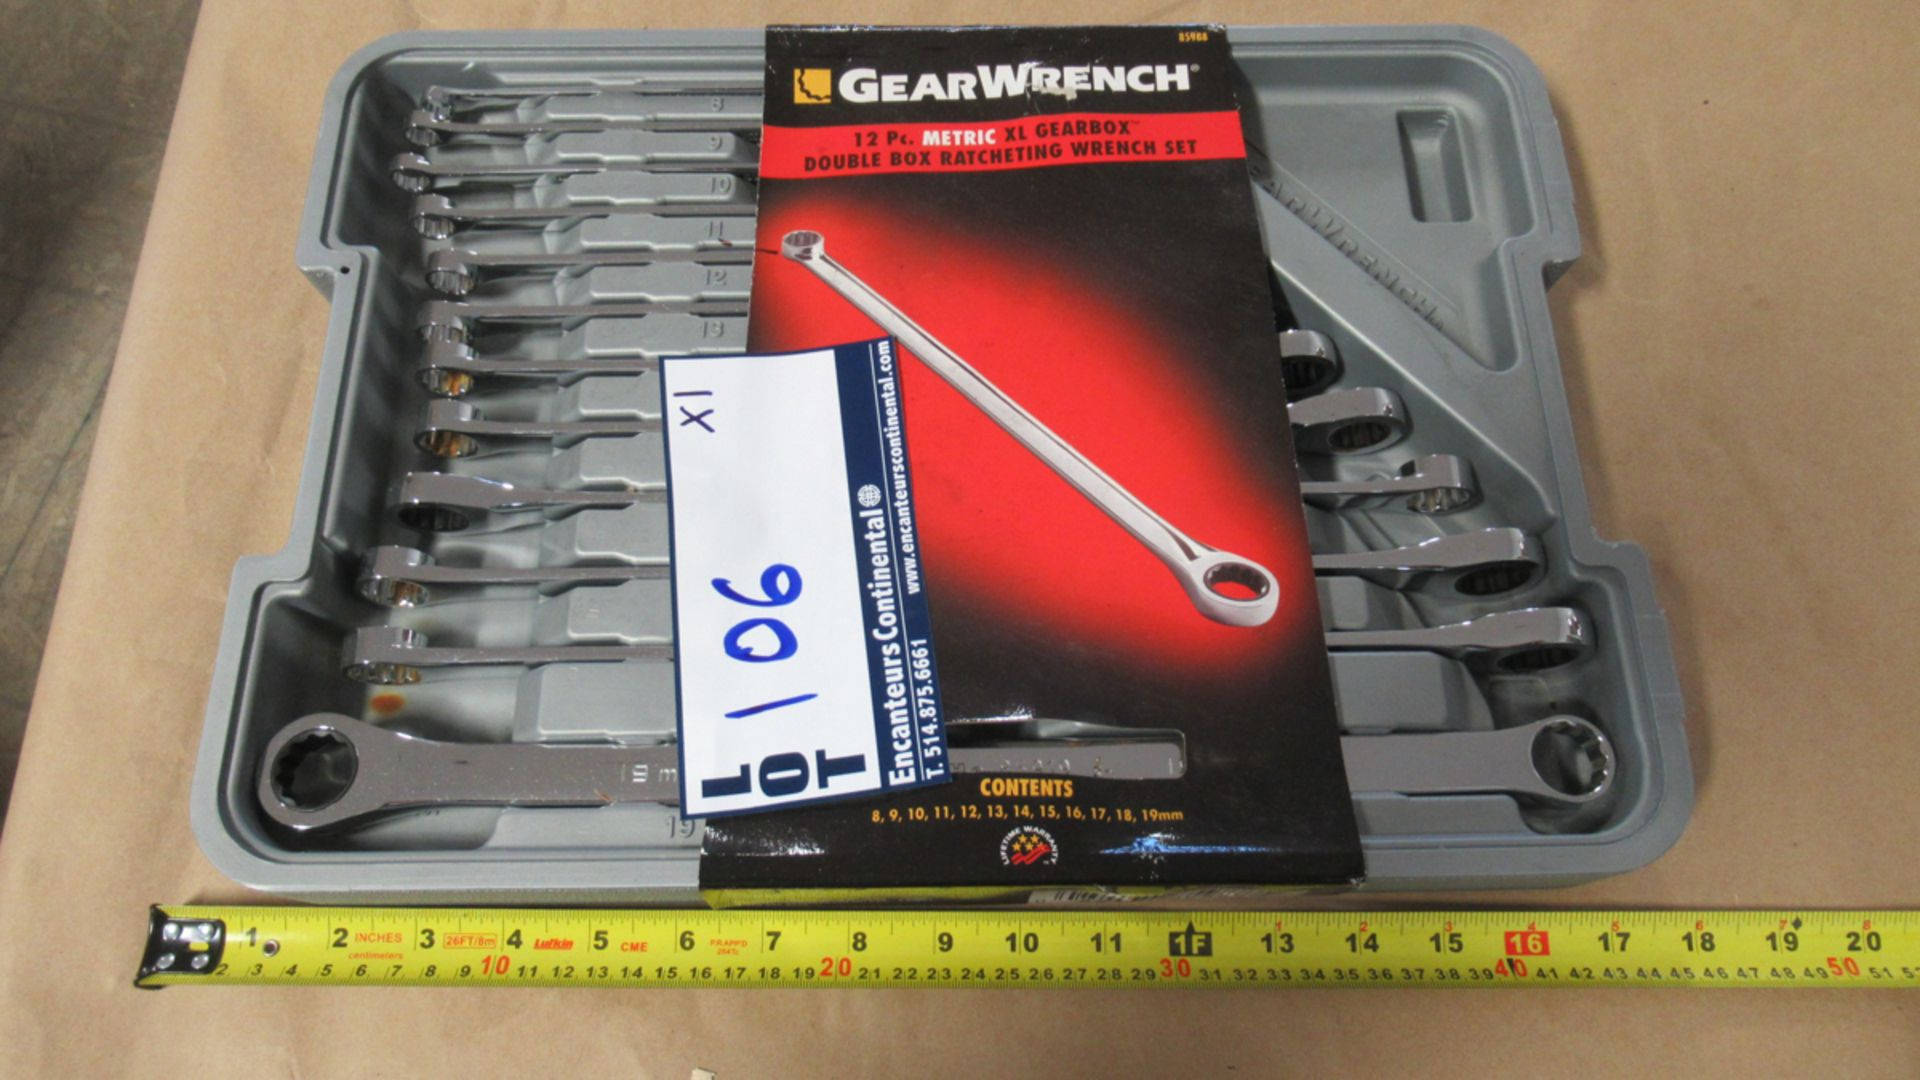 Lot 106 - 12 PC METRIC 8-19mm XL GEARBOX DBL BOX RATCHETING WRENCH GW 85988